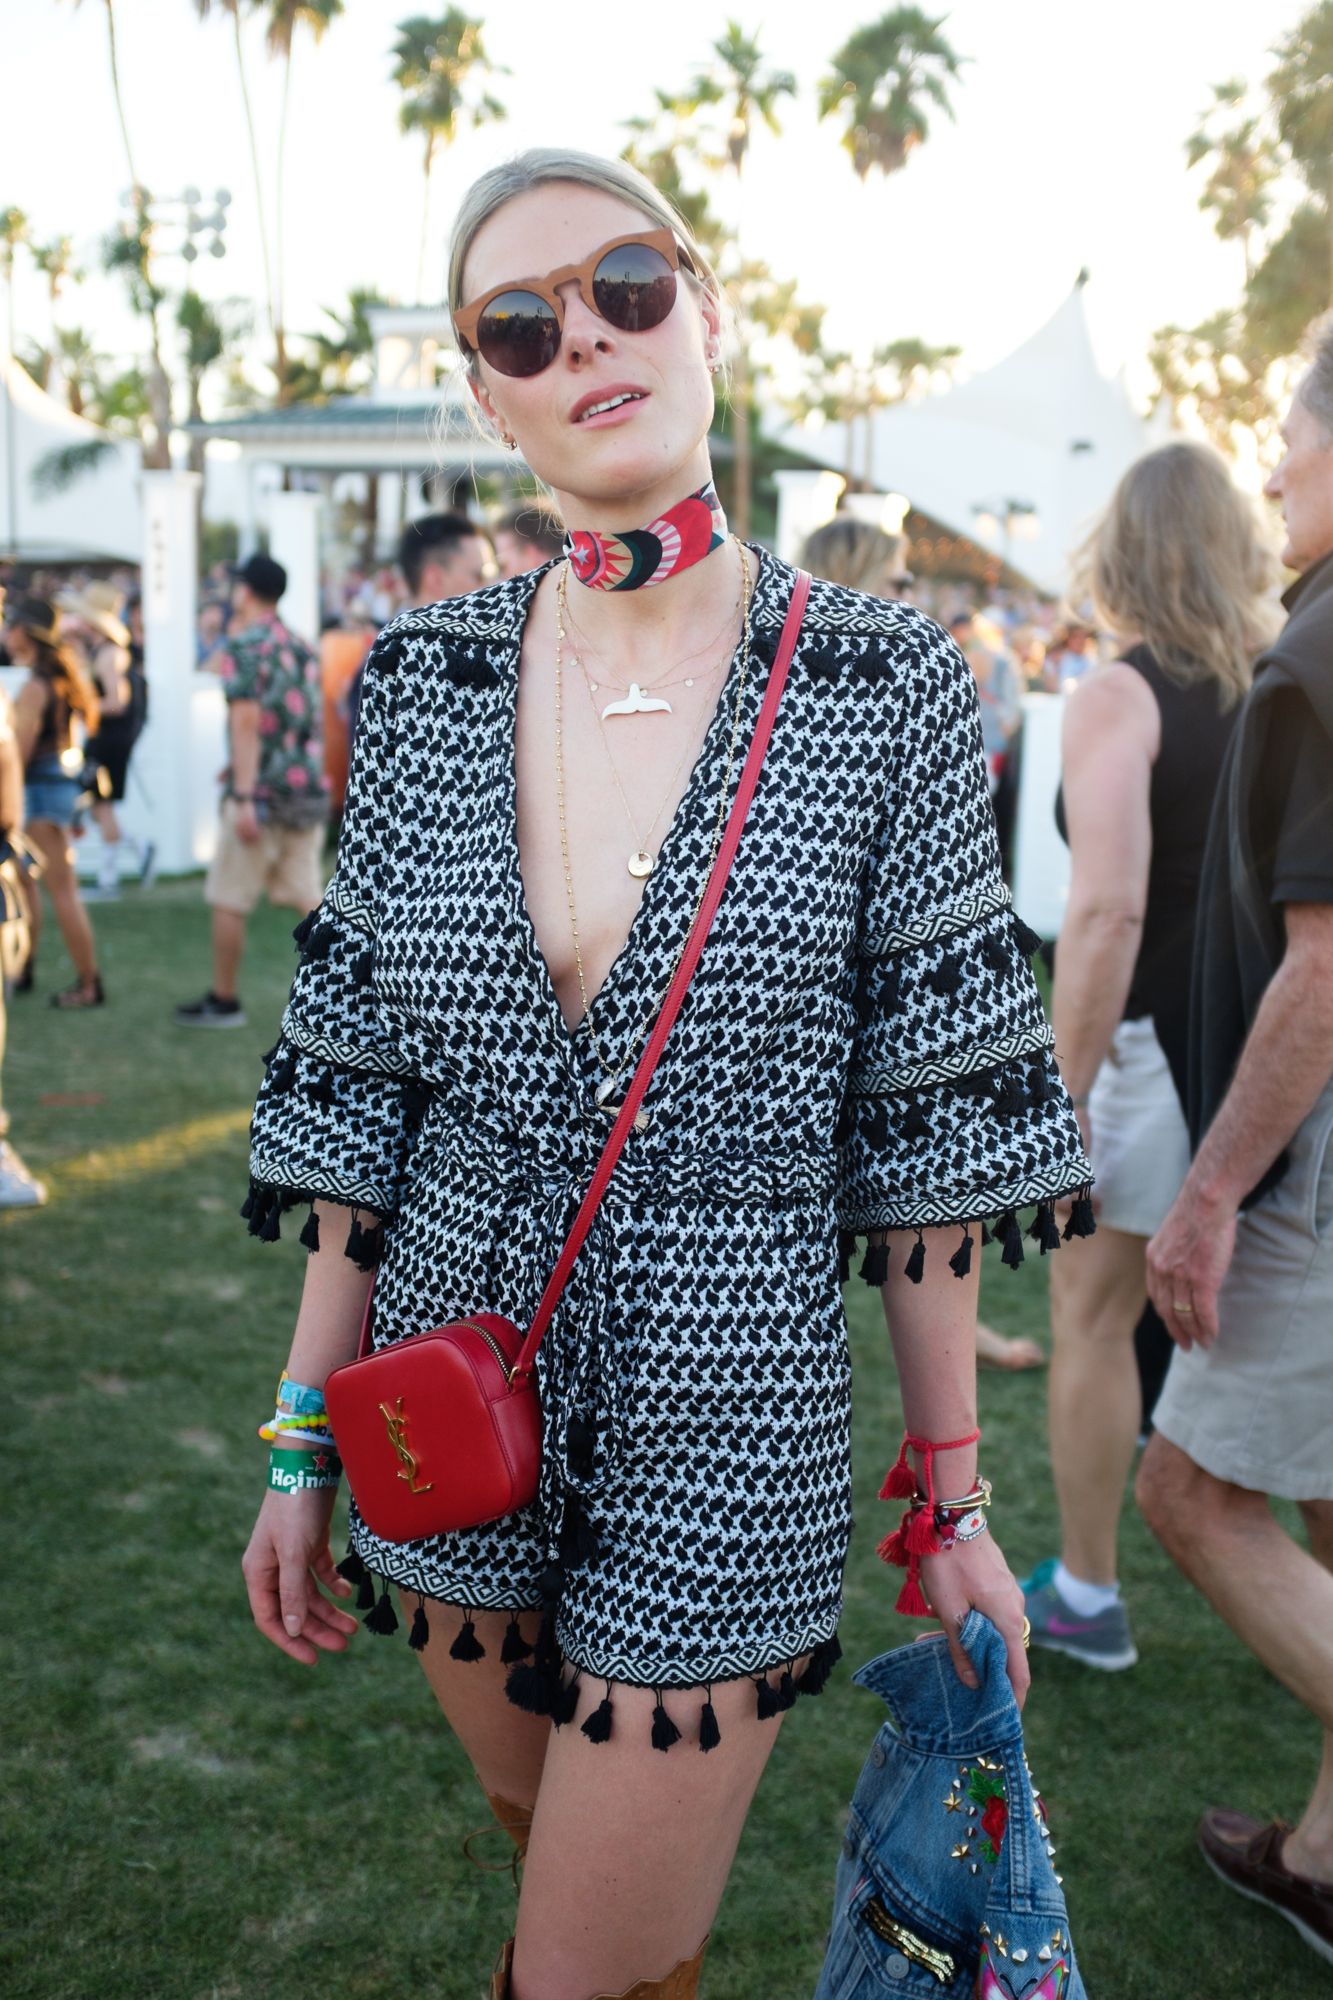 elle-coachella16-day2-011_1.jpg